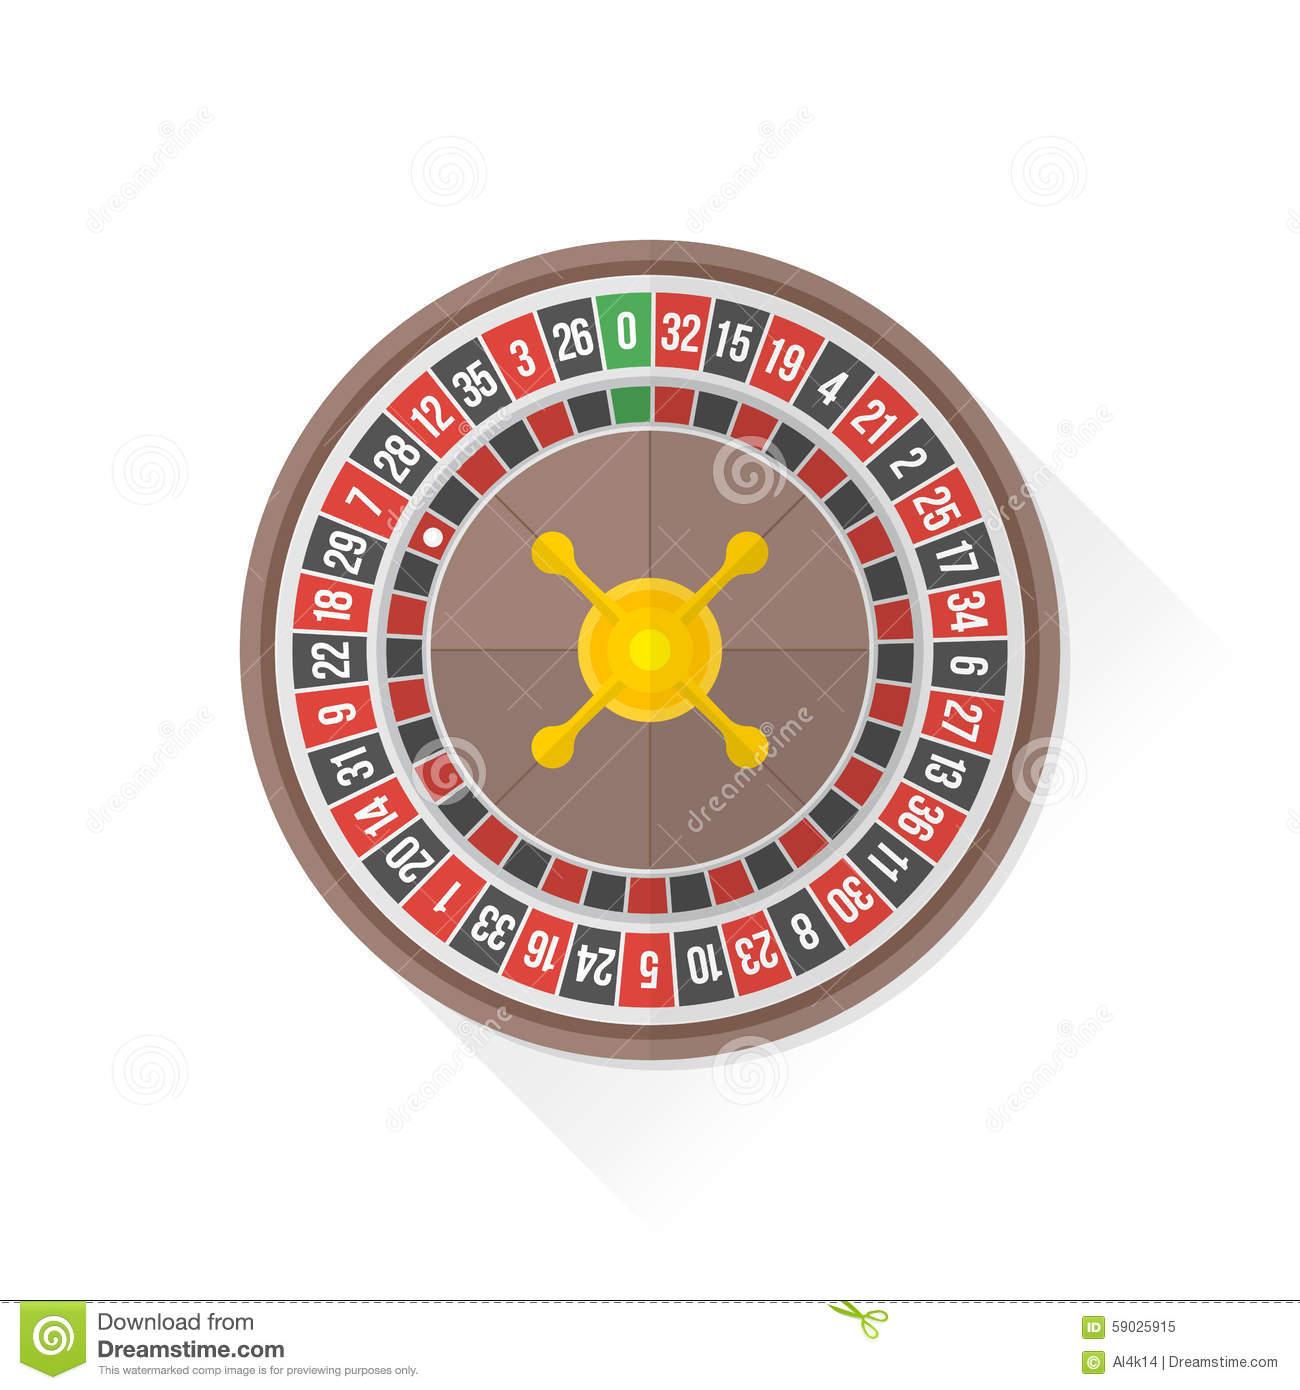 roulette betting on both colors